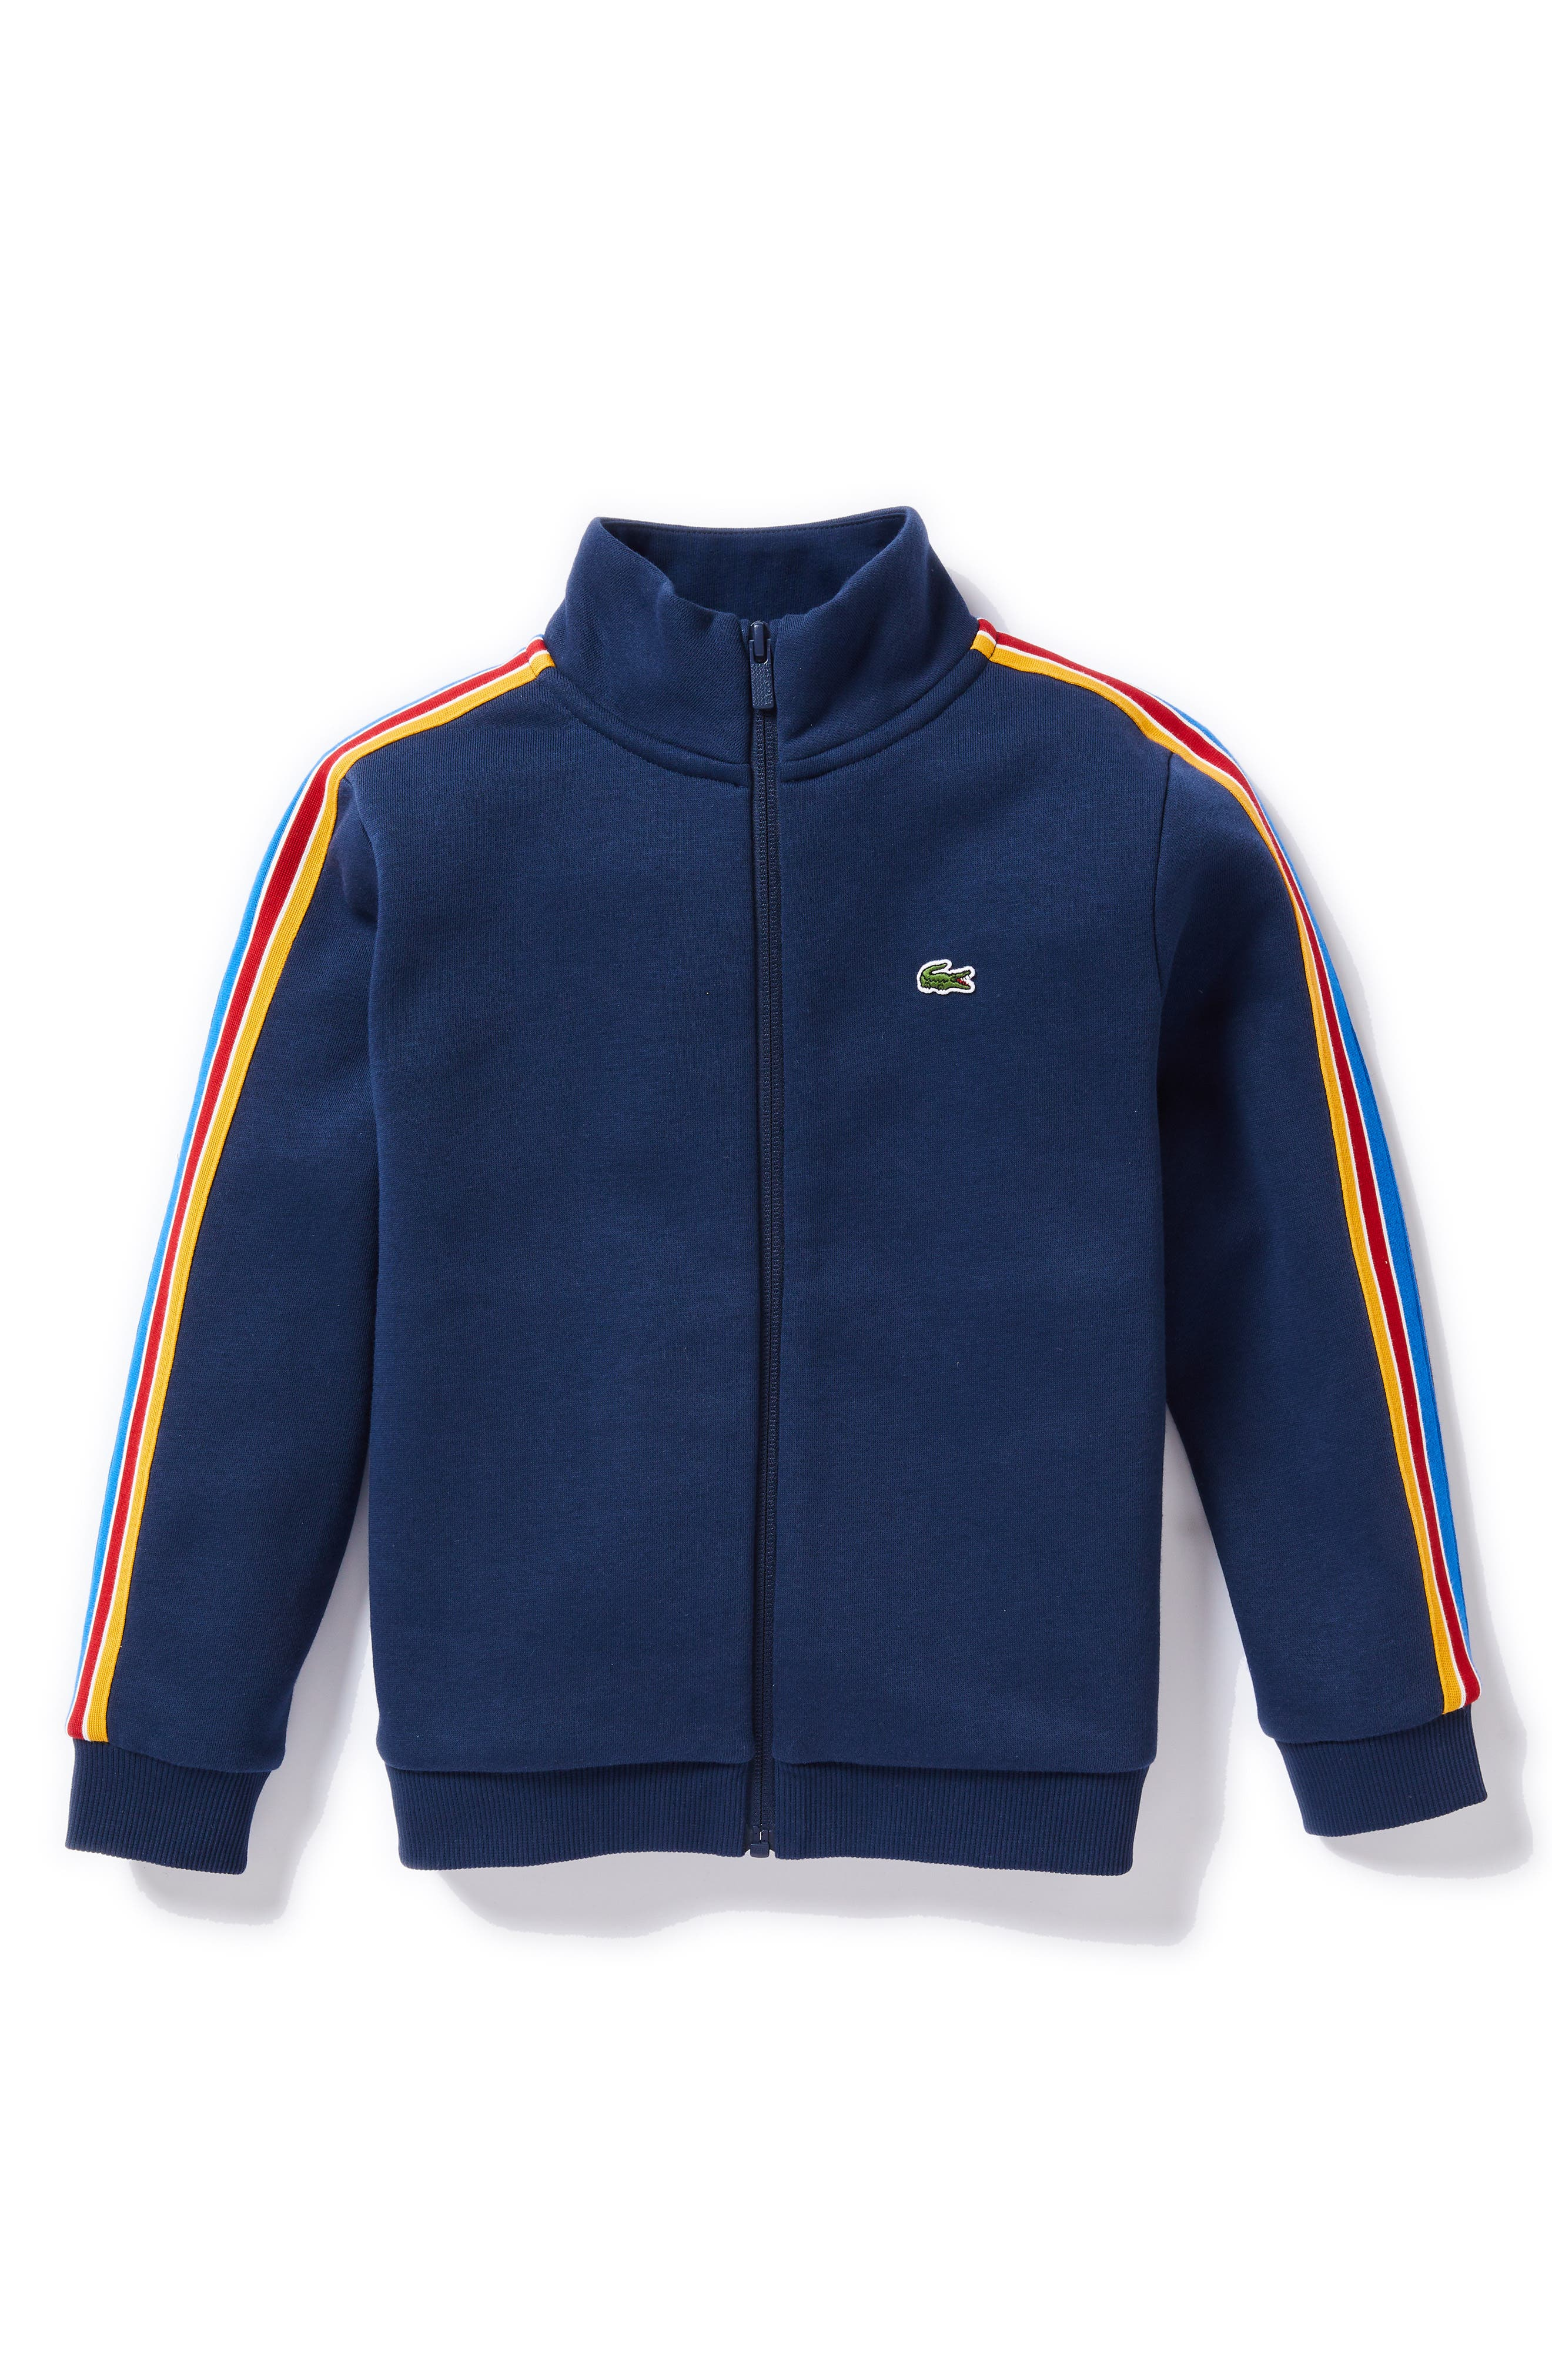 Athleisure Zip Jacket,                             Main thumbnail 1, color,                             NAVY BLUE